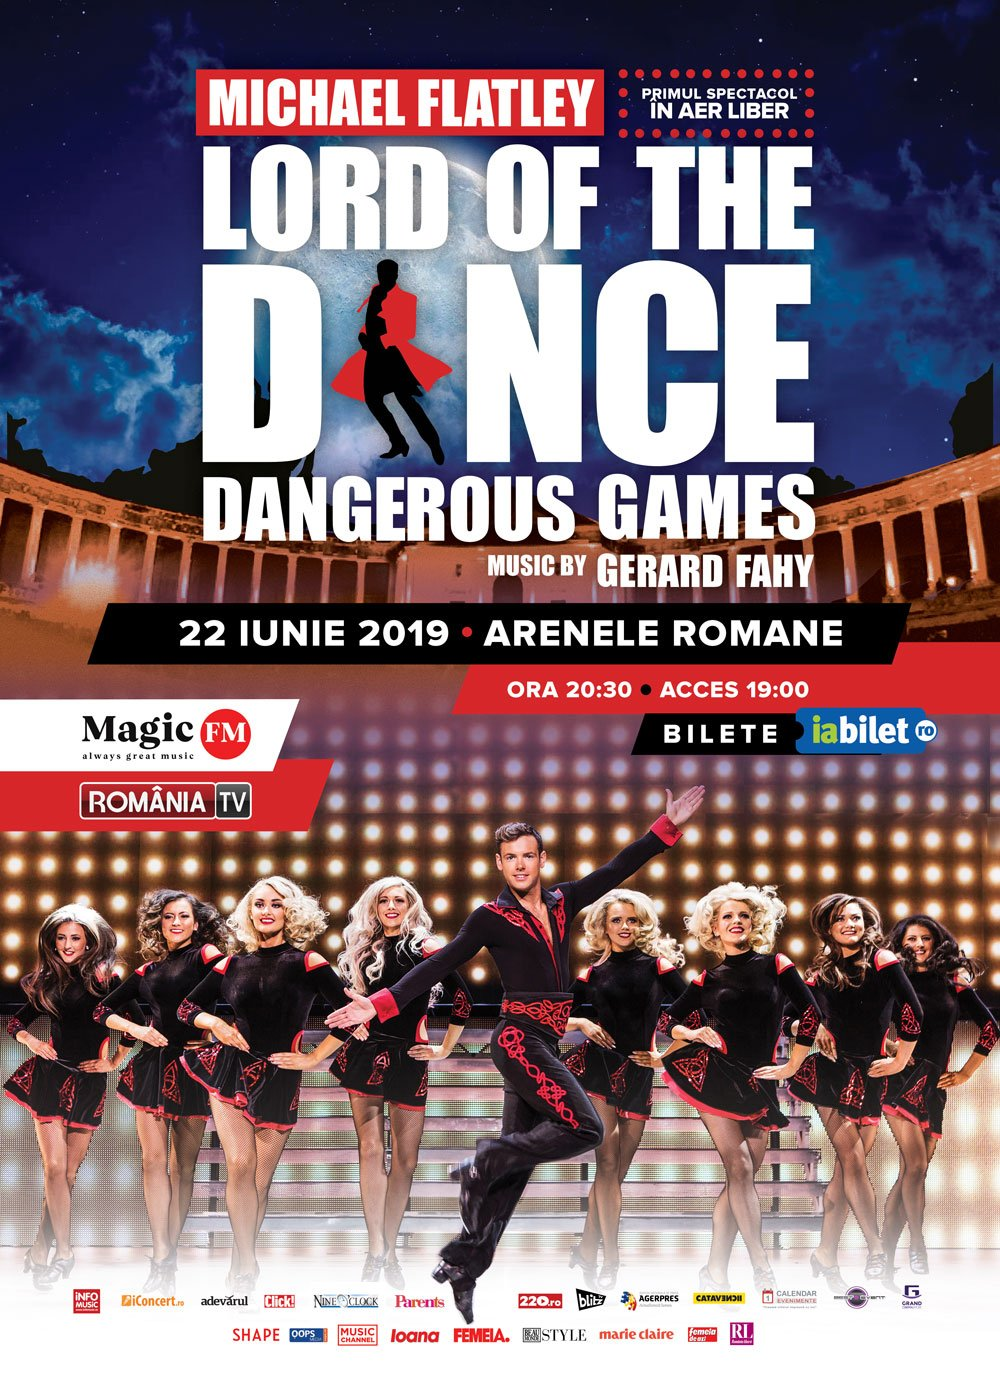 LORD OF THE DANCE – DANGEROUS GAMES:  SHOW-UL DANSATORILOR IRLANDEZI  CARE A DOBORÂT ORICE RECORD DE BOX-OFFICE VINE PE 22 IUNIE, LA BUCUREȘTI